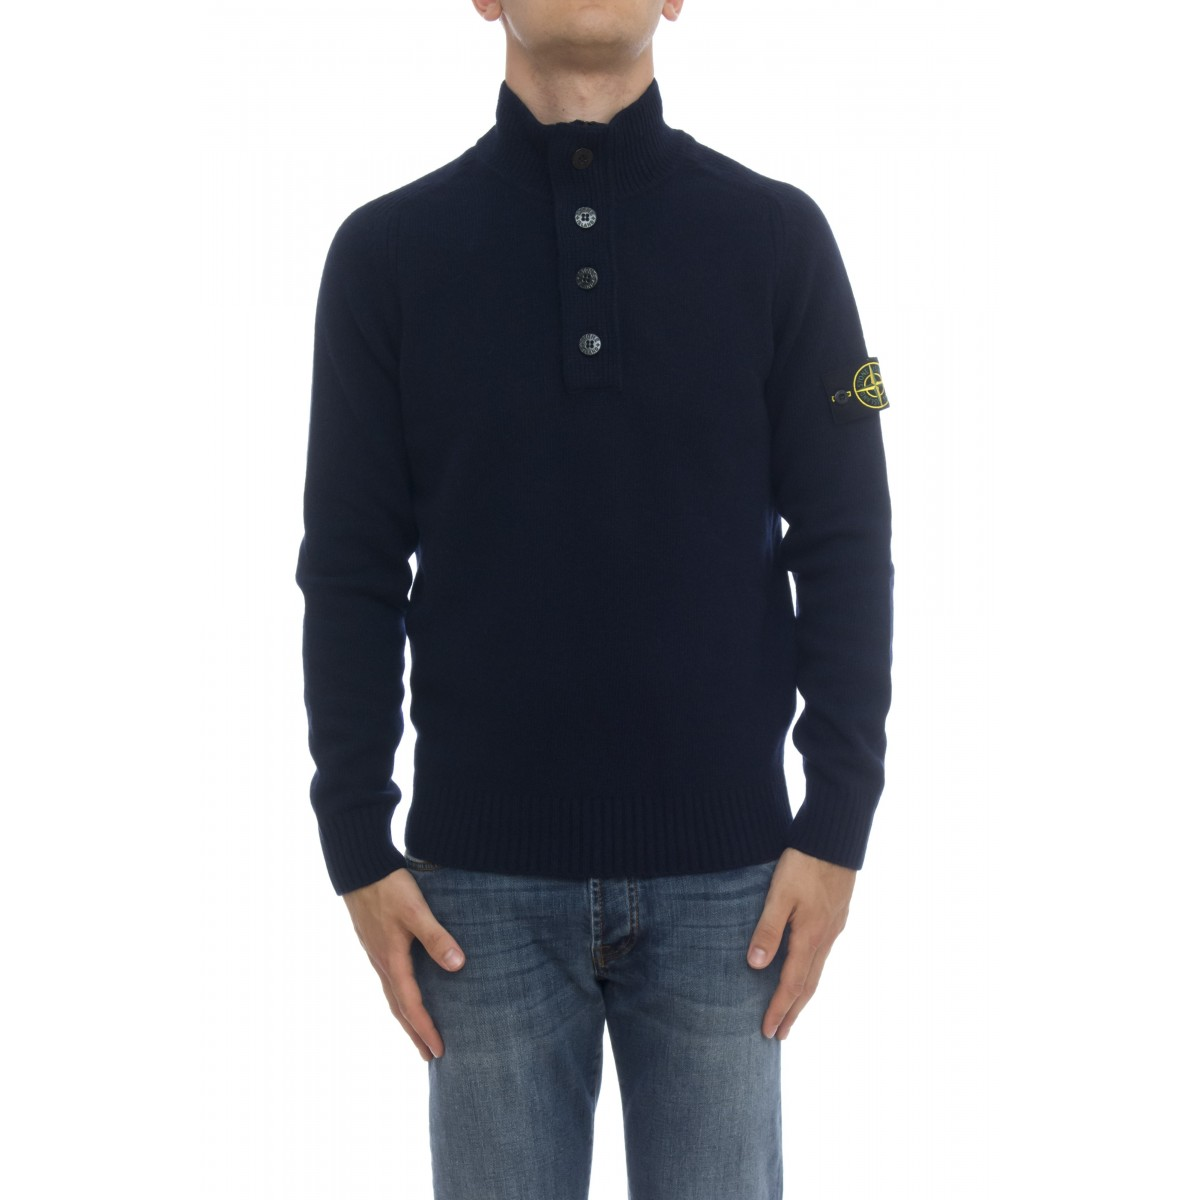 Sweater - 532A3 Half zip with 4 button